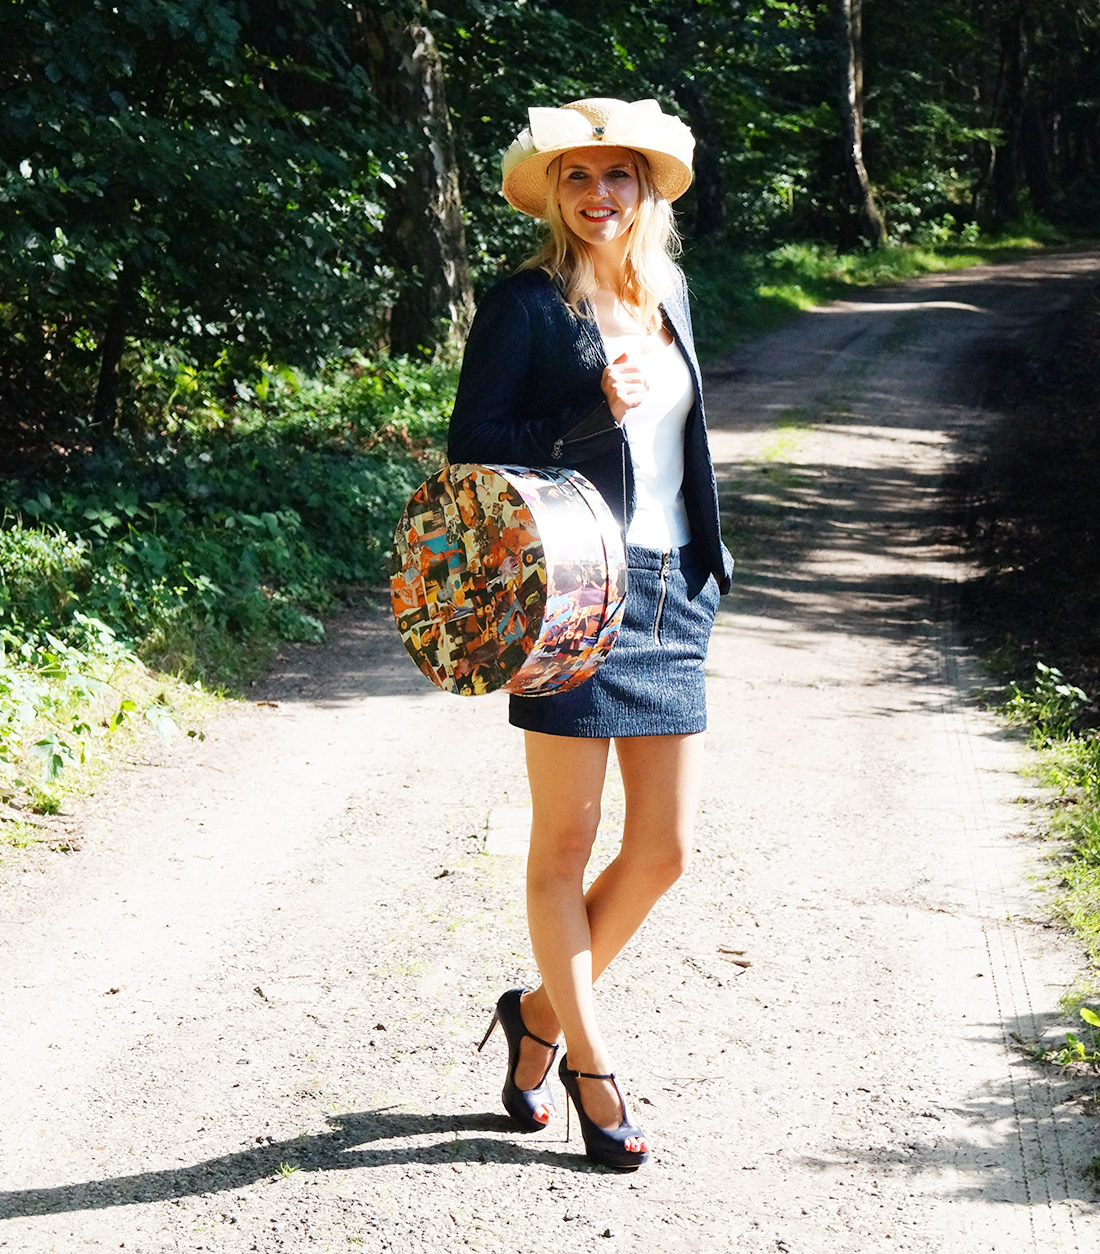 Bag-at-You---Fashion-Blog---Tenue-de-Ville---Hat-box-bag